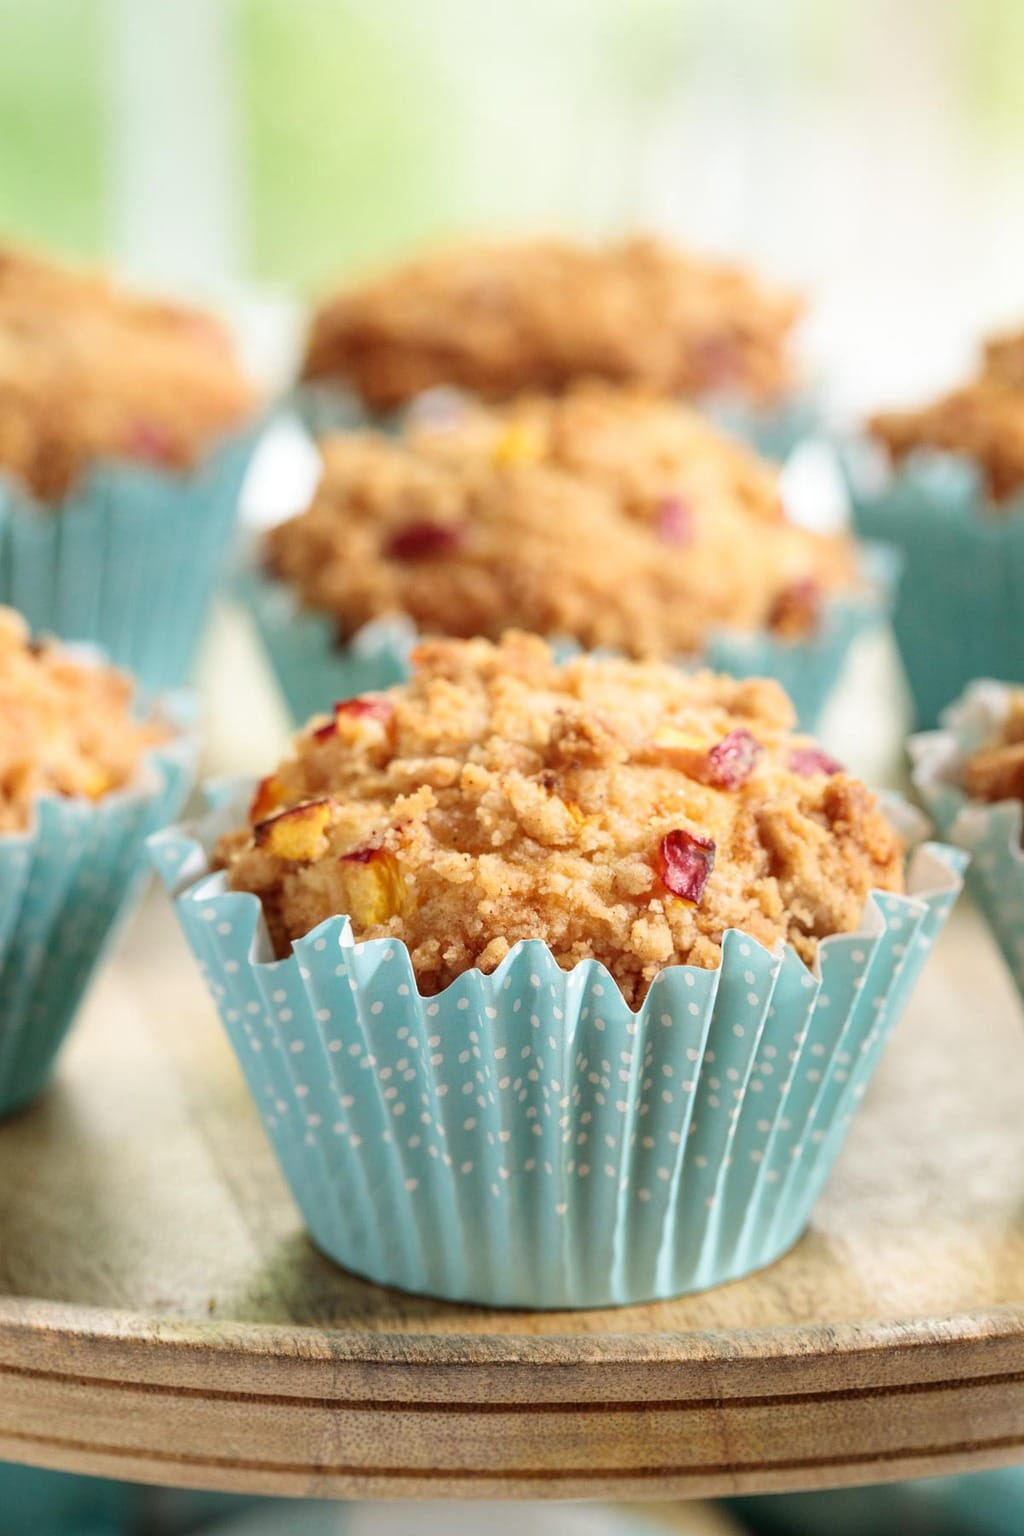 Extreme closeup photo of a serving pedestal filled with Easy Peach Crumble Muffins in turquoise patterned cupcake liners.